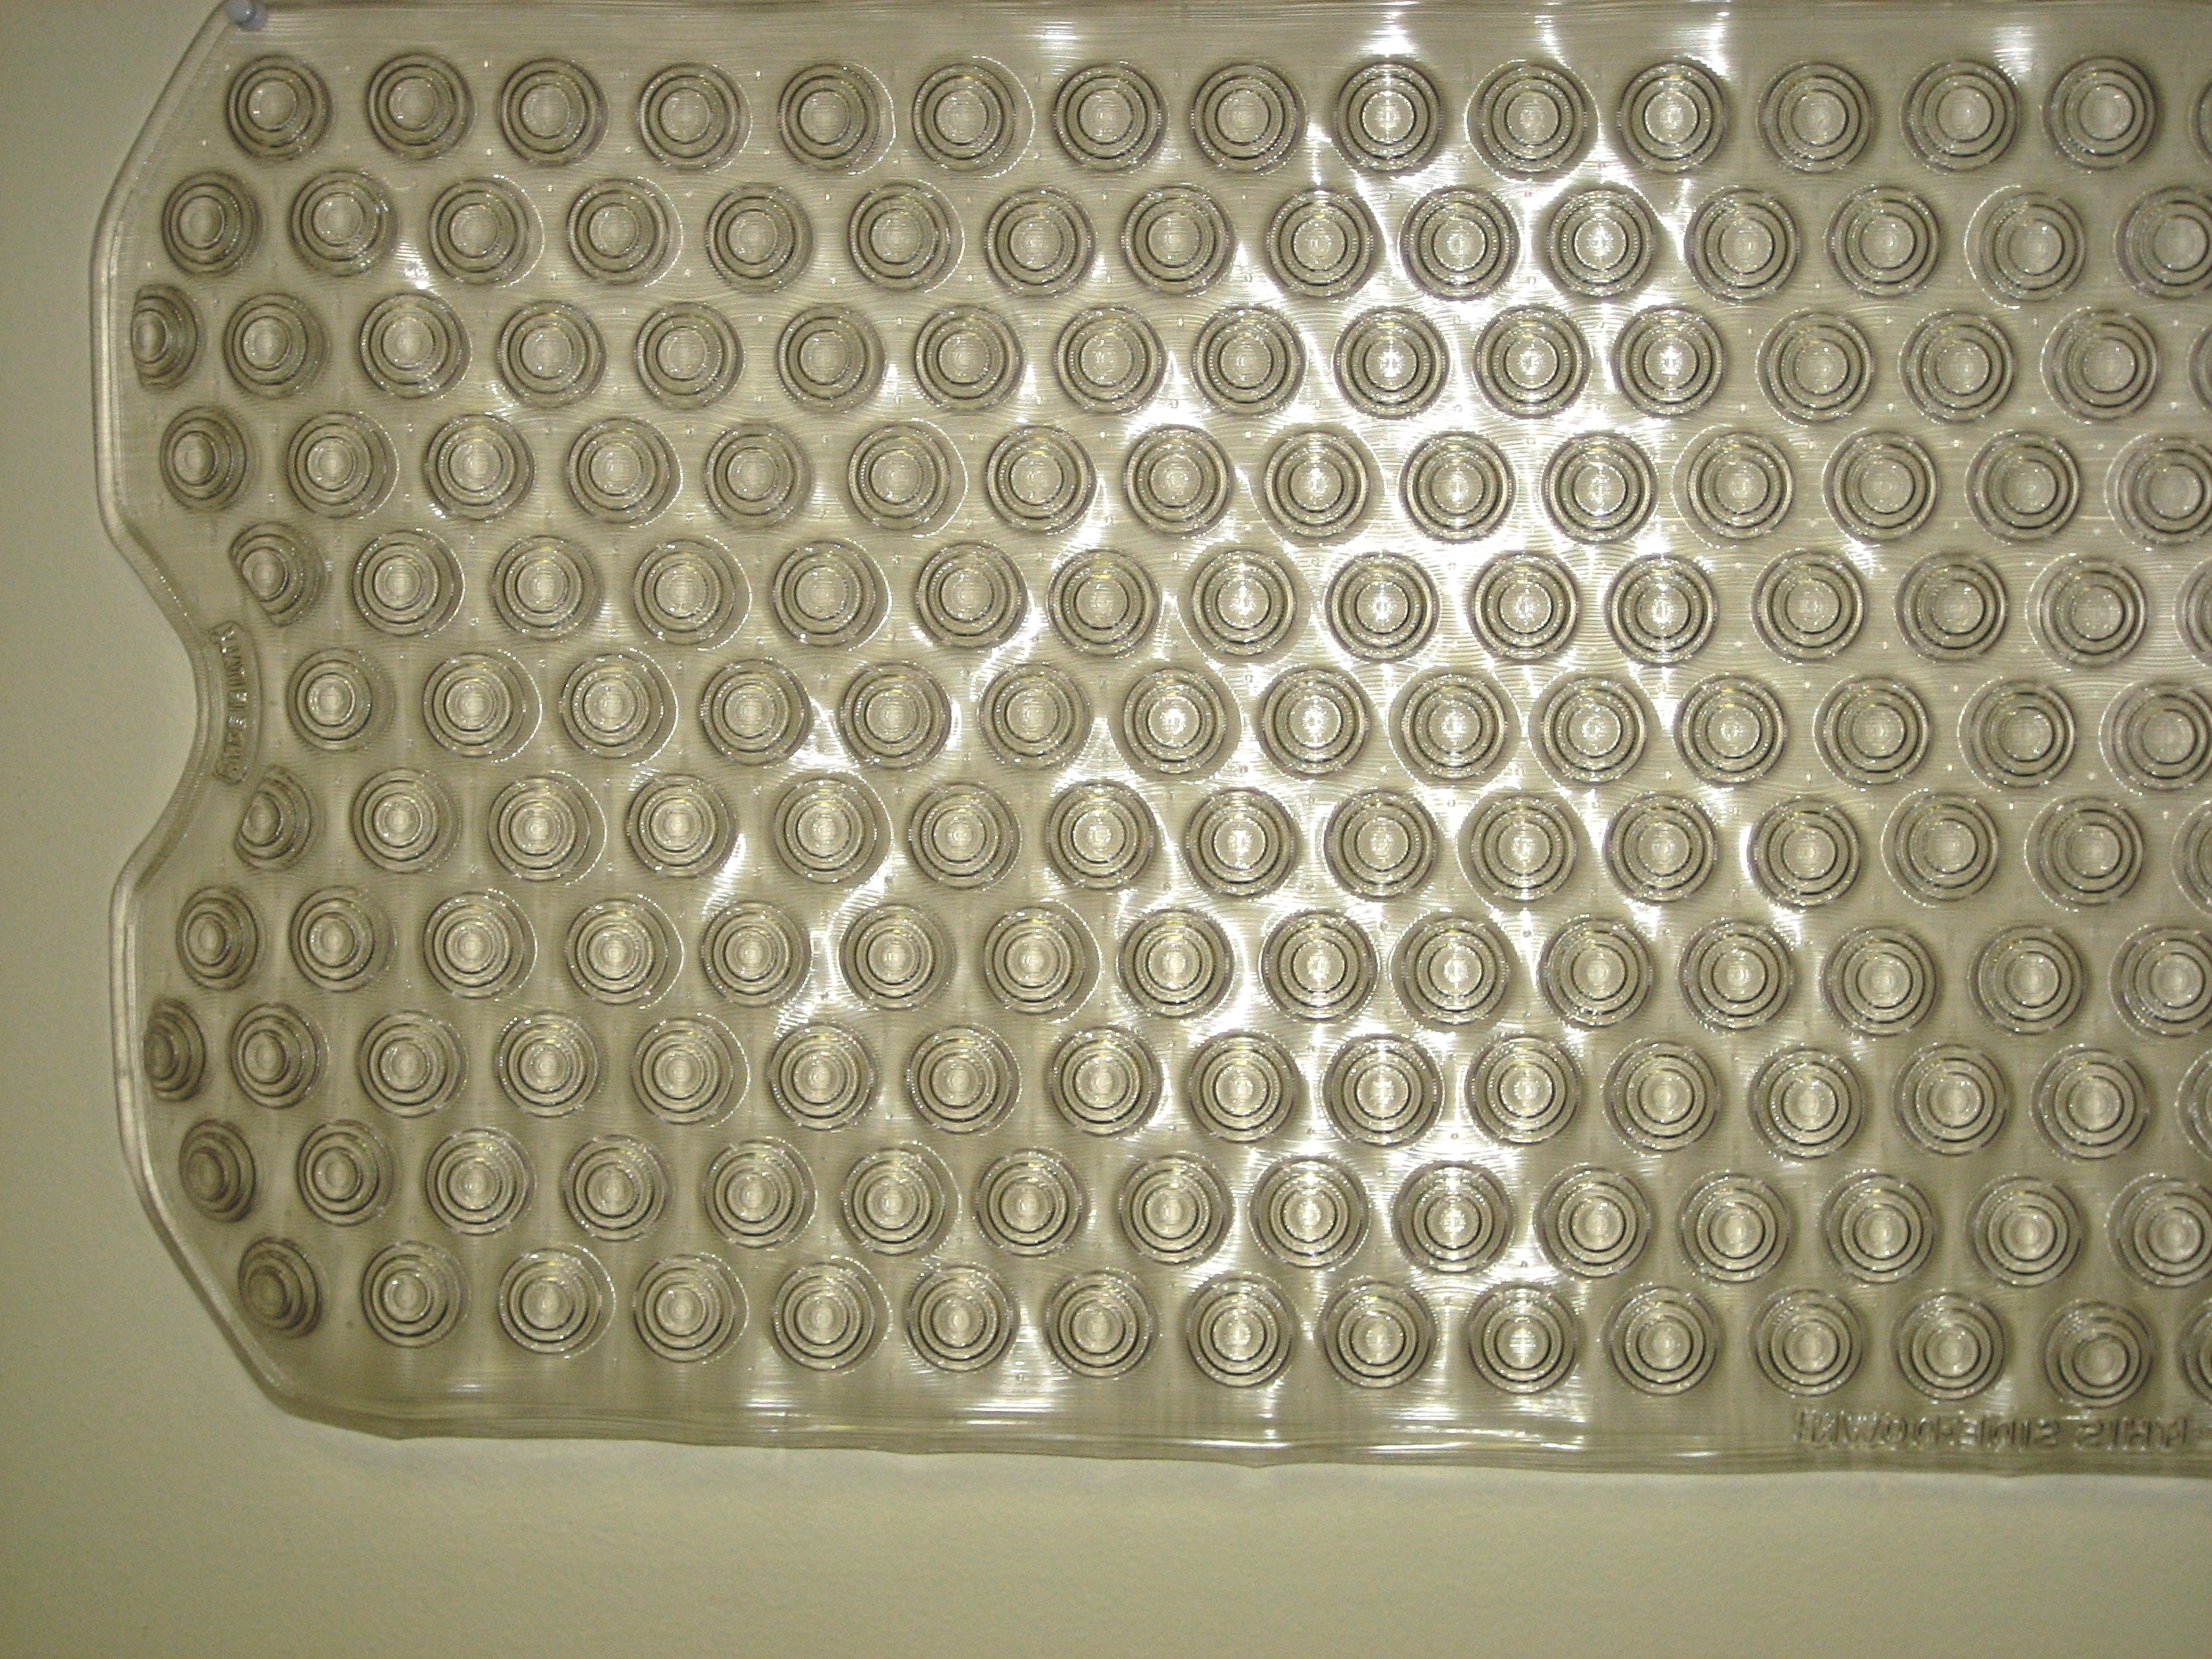 Clear Deluxe Vinyl Bath Mats W/ Inverted Suction Cups